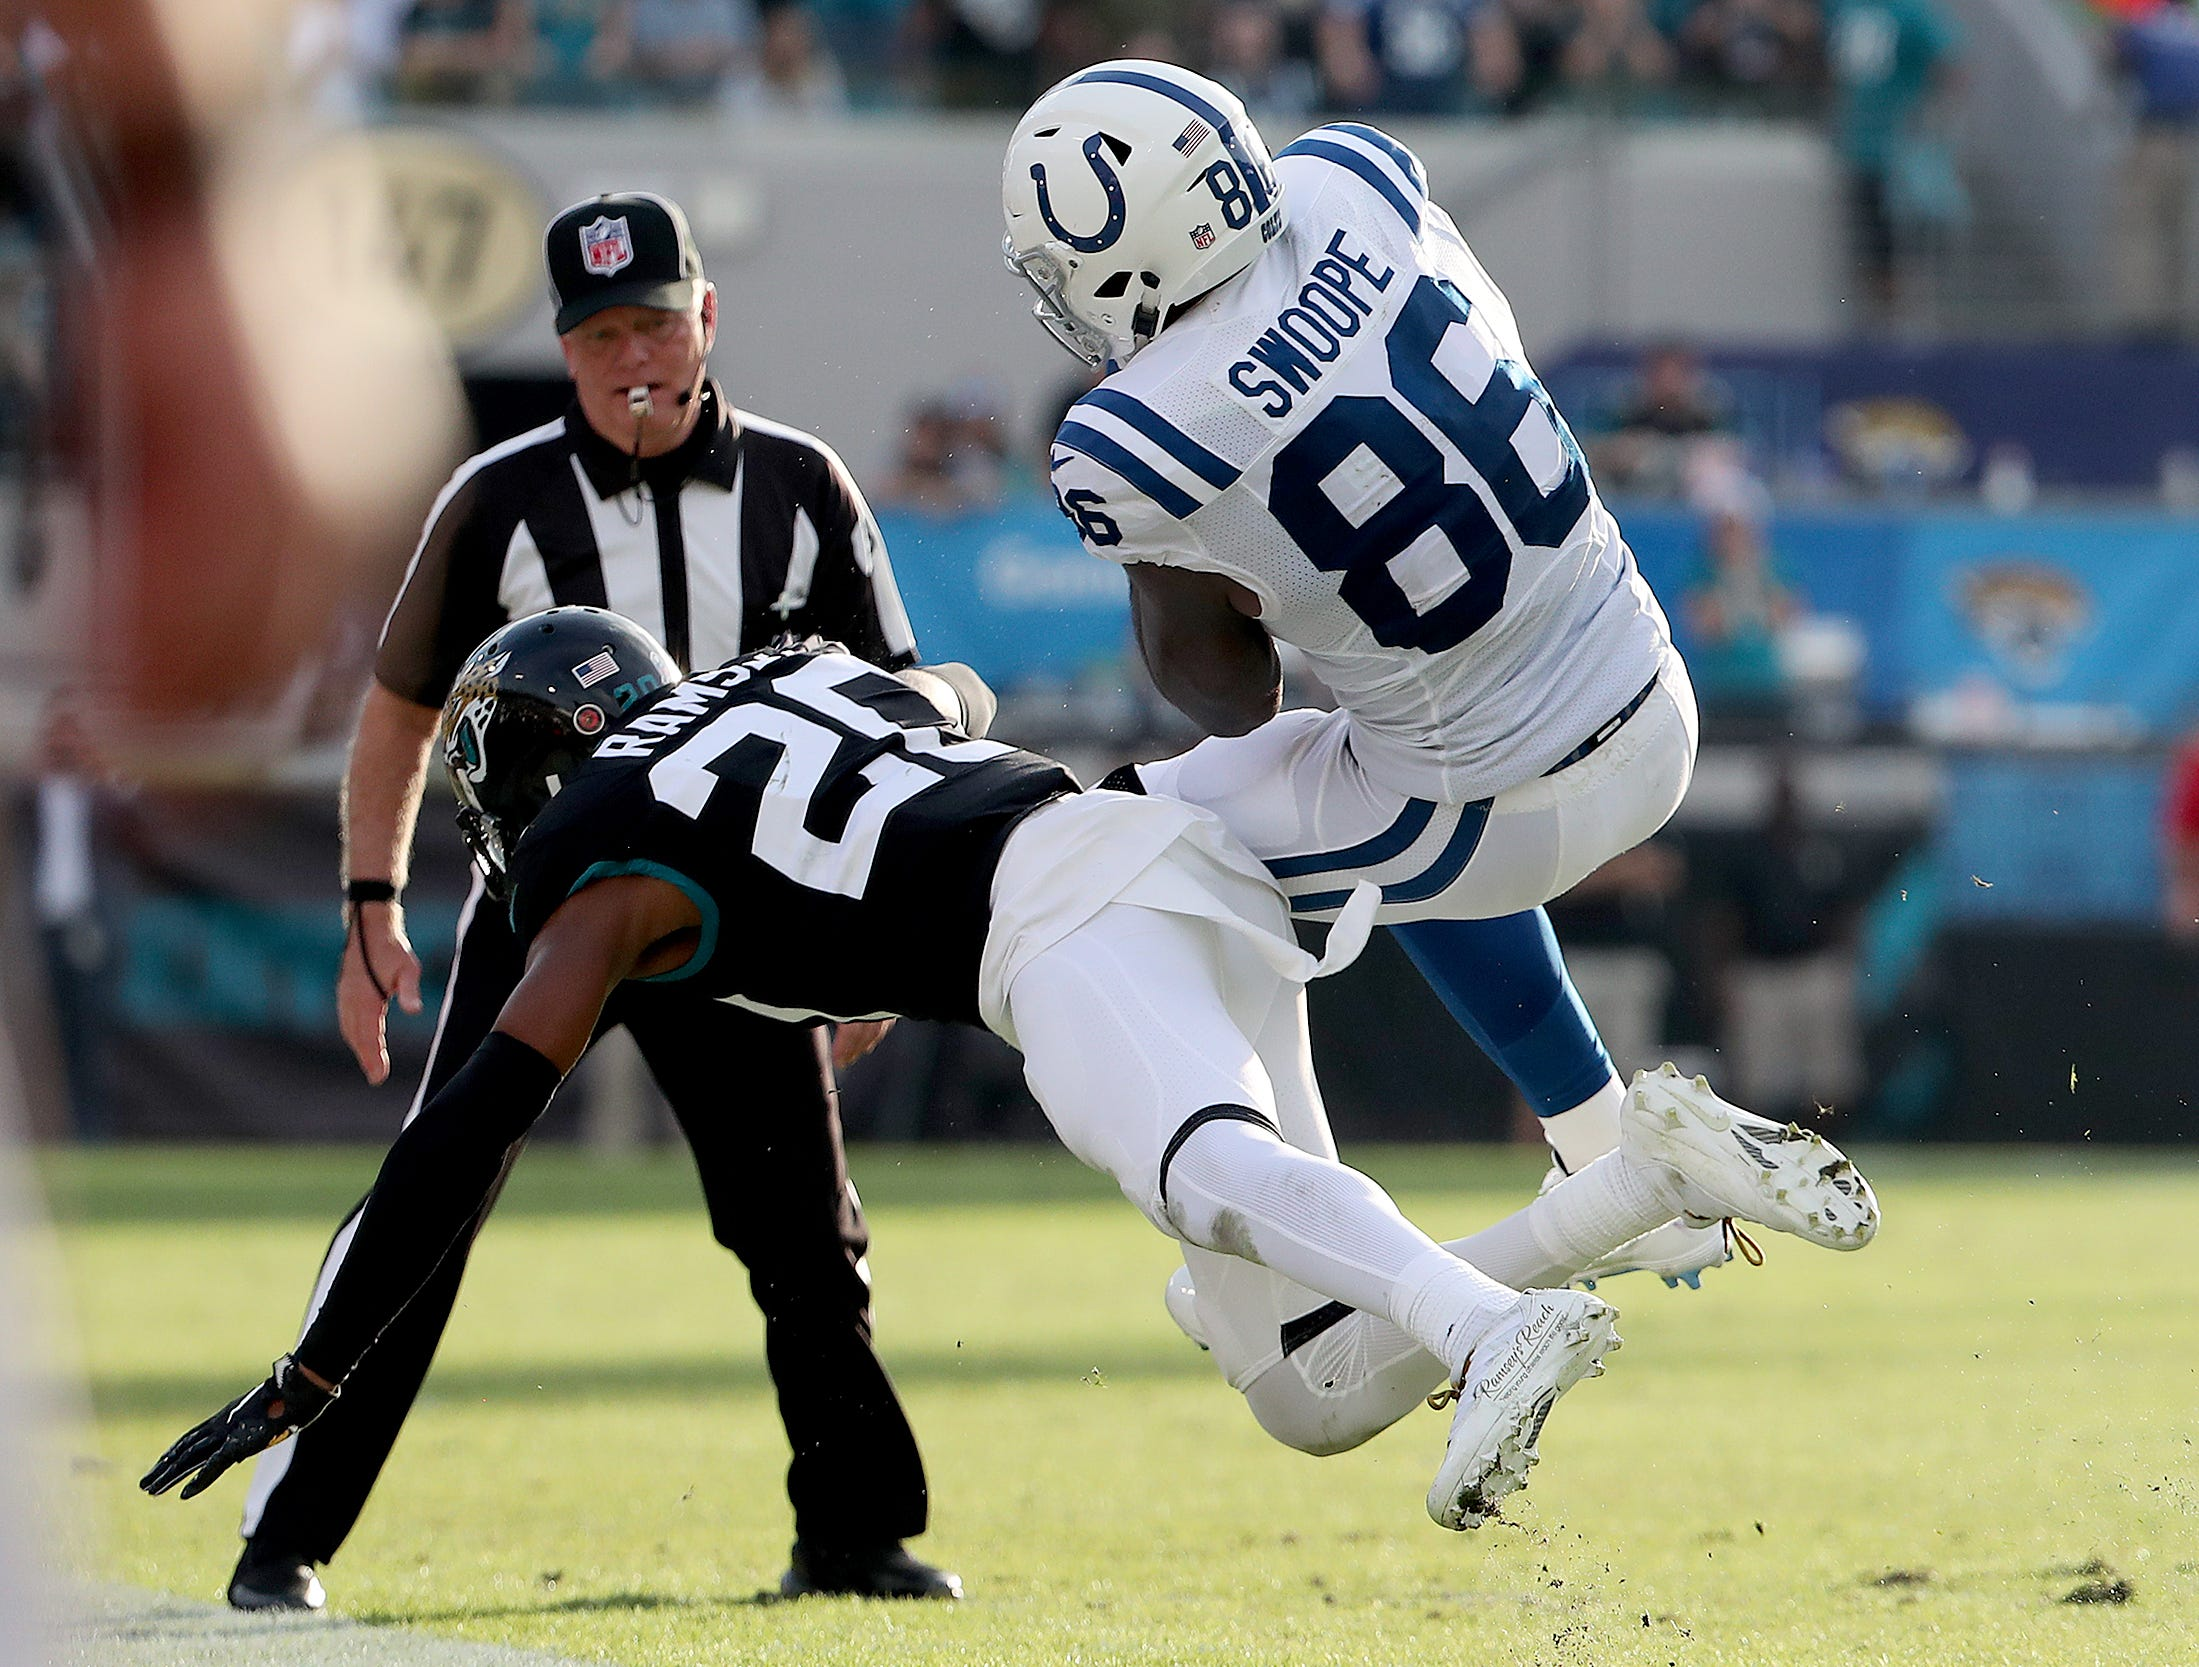 Indianapolis Colts tight end Erik Swoope (86) catches the ball and hit by Jacksonville Jaguars cornerback Jalen Ramsey (20) on the final play of their game at TIAA Bank Field on Thursday, Dec. 2, 2018. The Jacksonville Jaguars defeated the Colts 6-0.